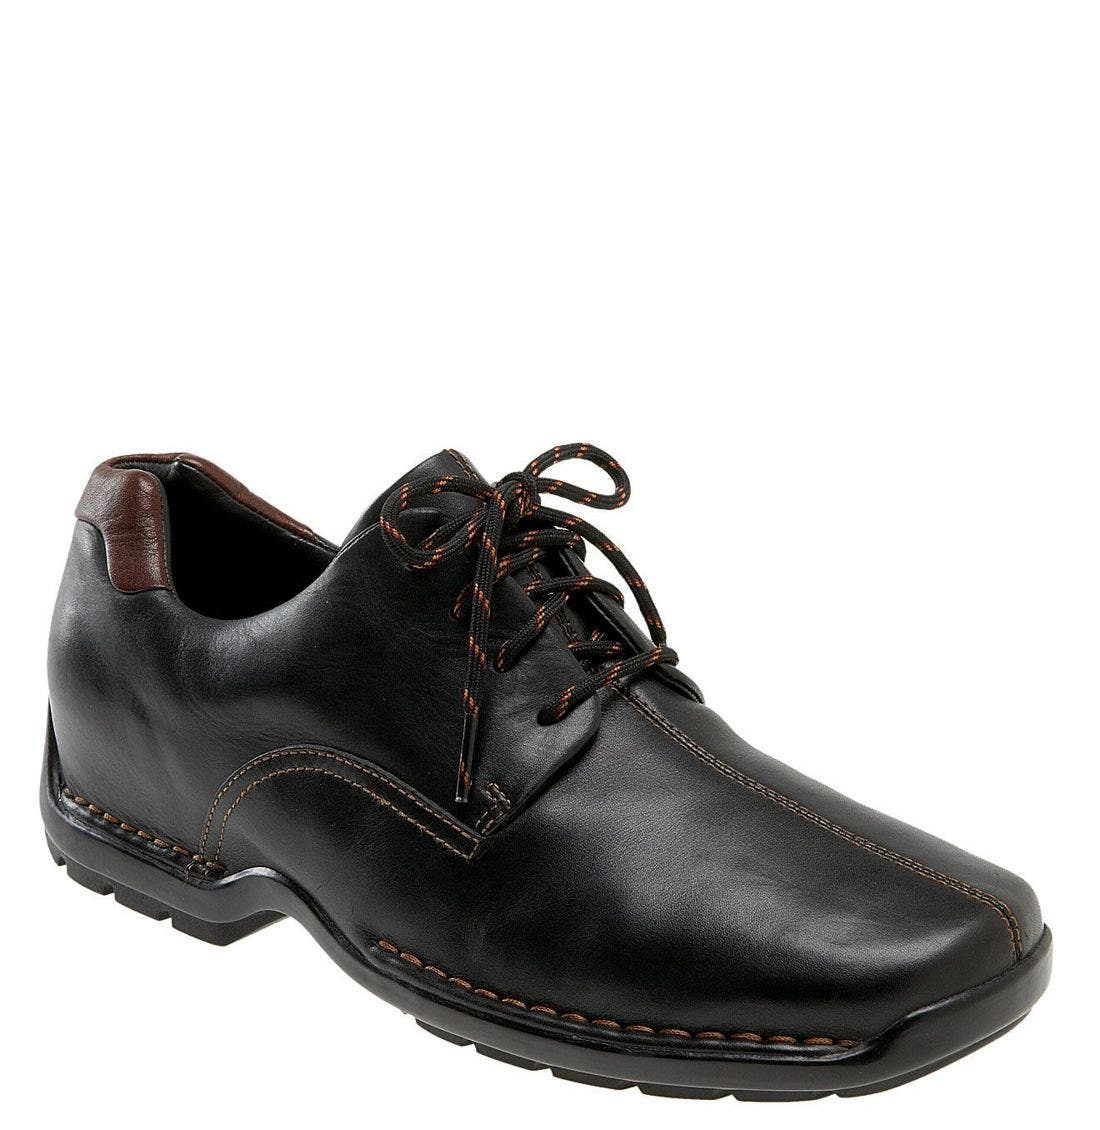 Alternate Image 1 Selected - Cole Haan 'Zeno' Oxford